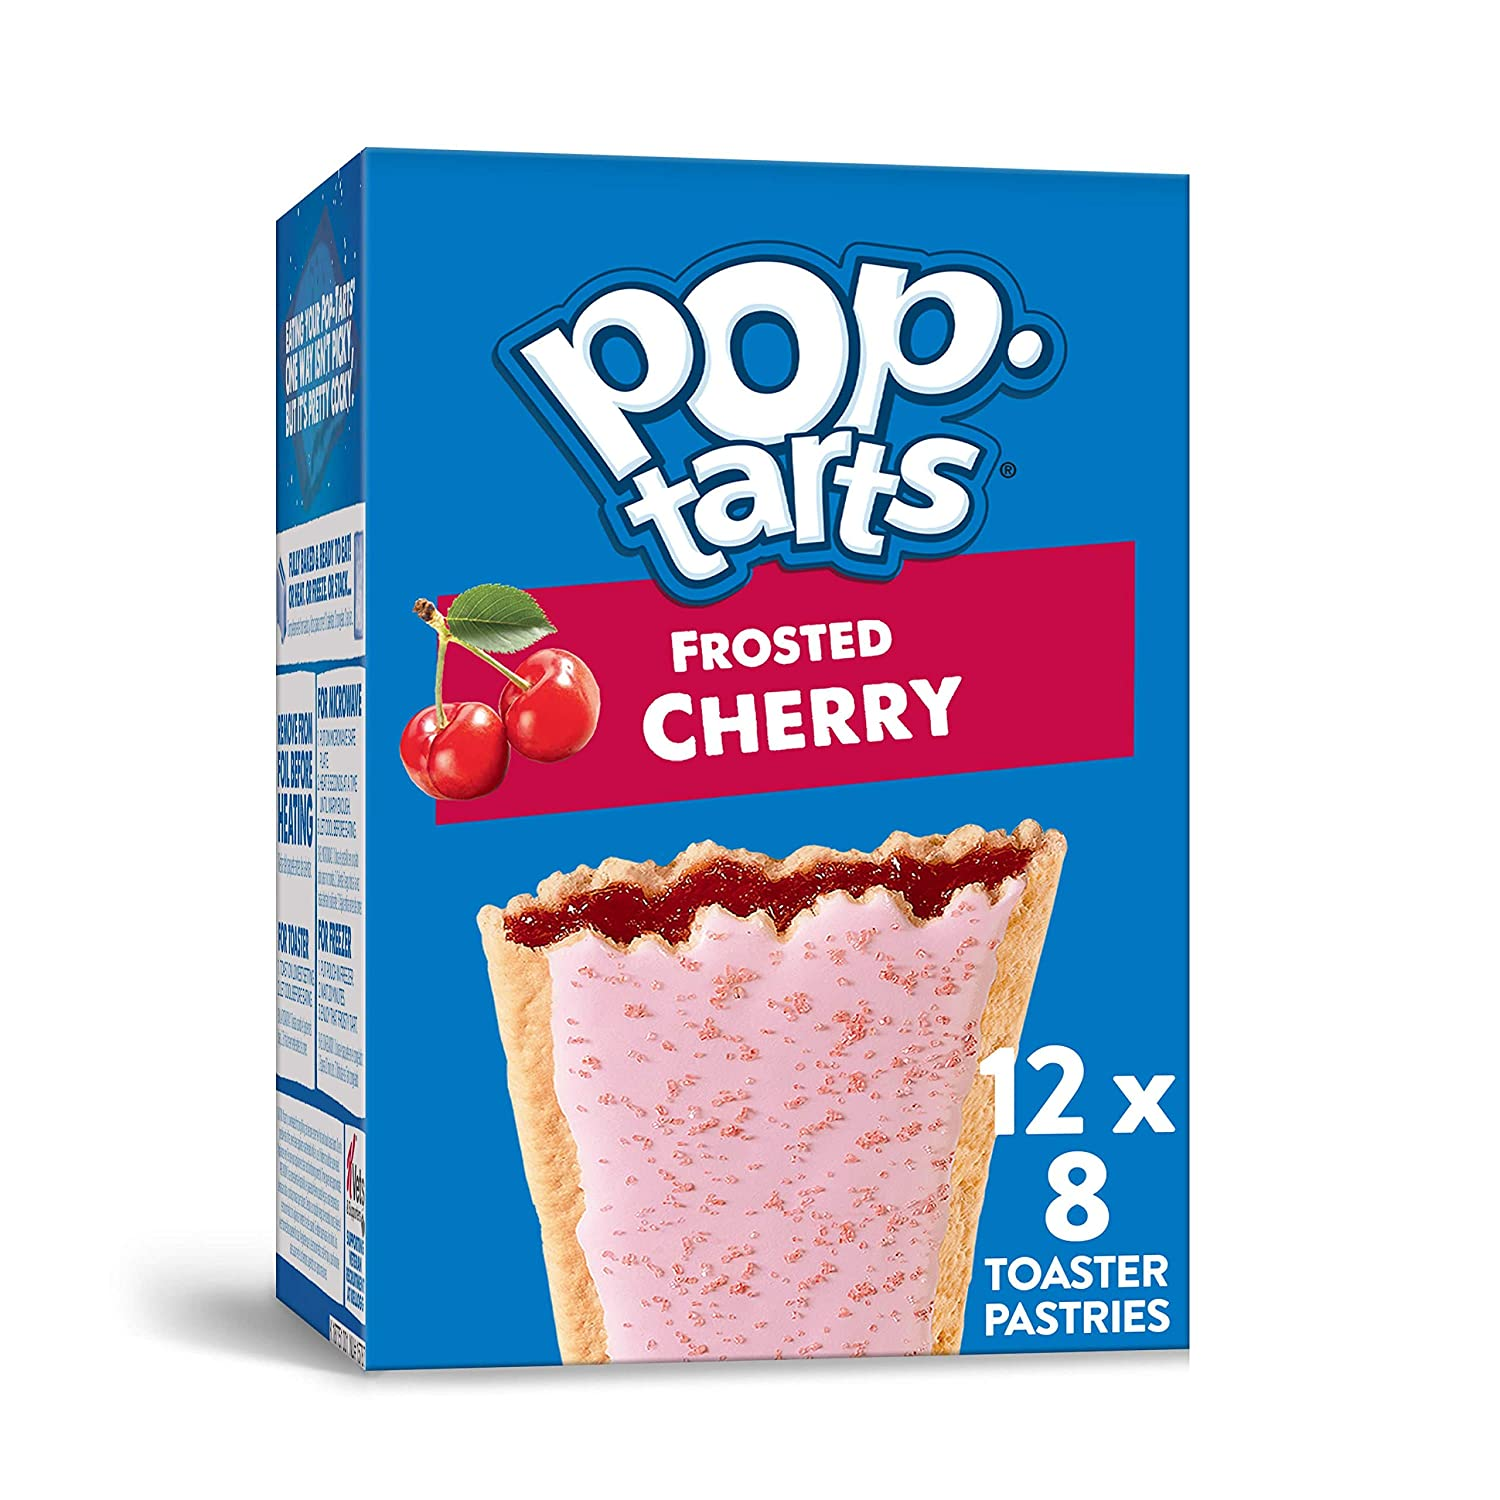 Pop-Tarts Frosted Cherry Breakfast Toaster Pastries, 13.5 Oz(Pack of 12)